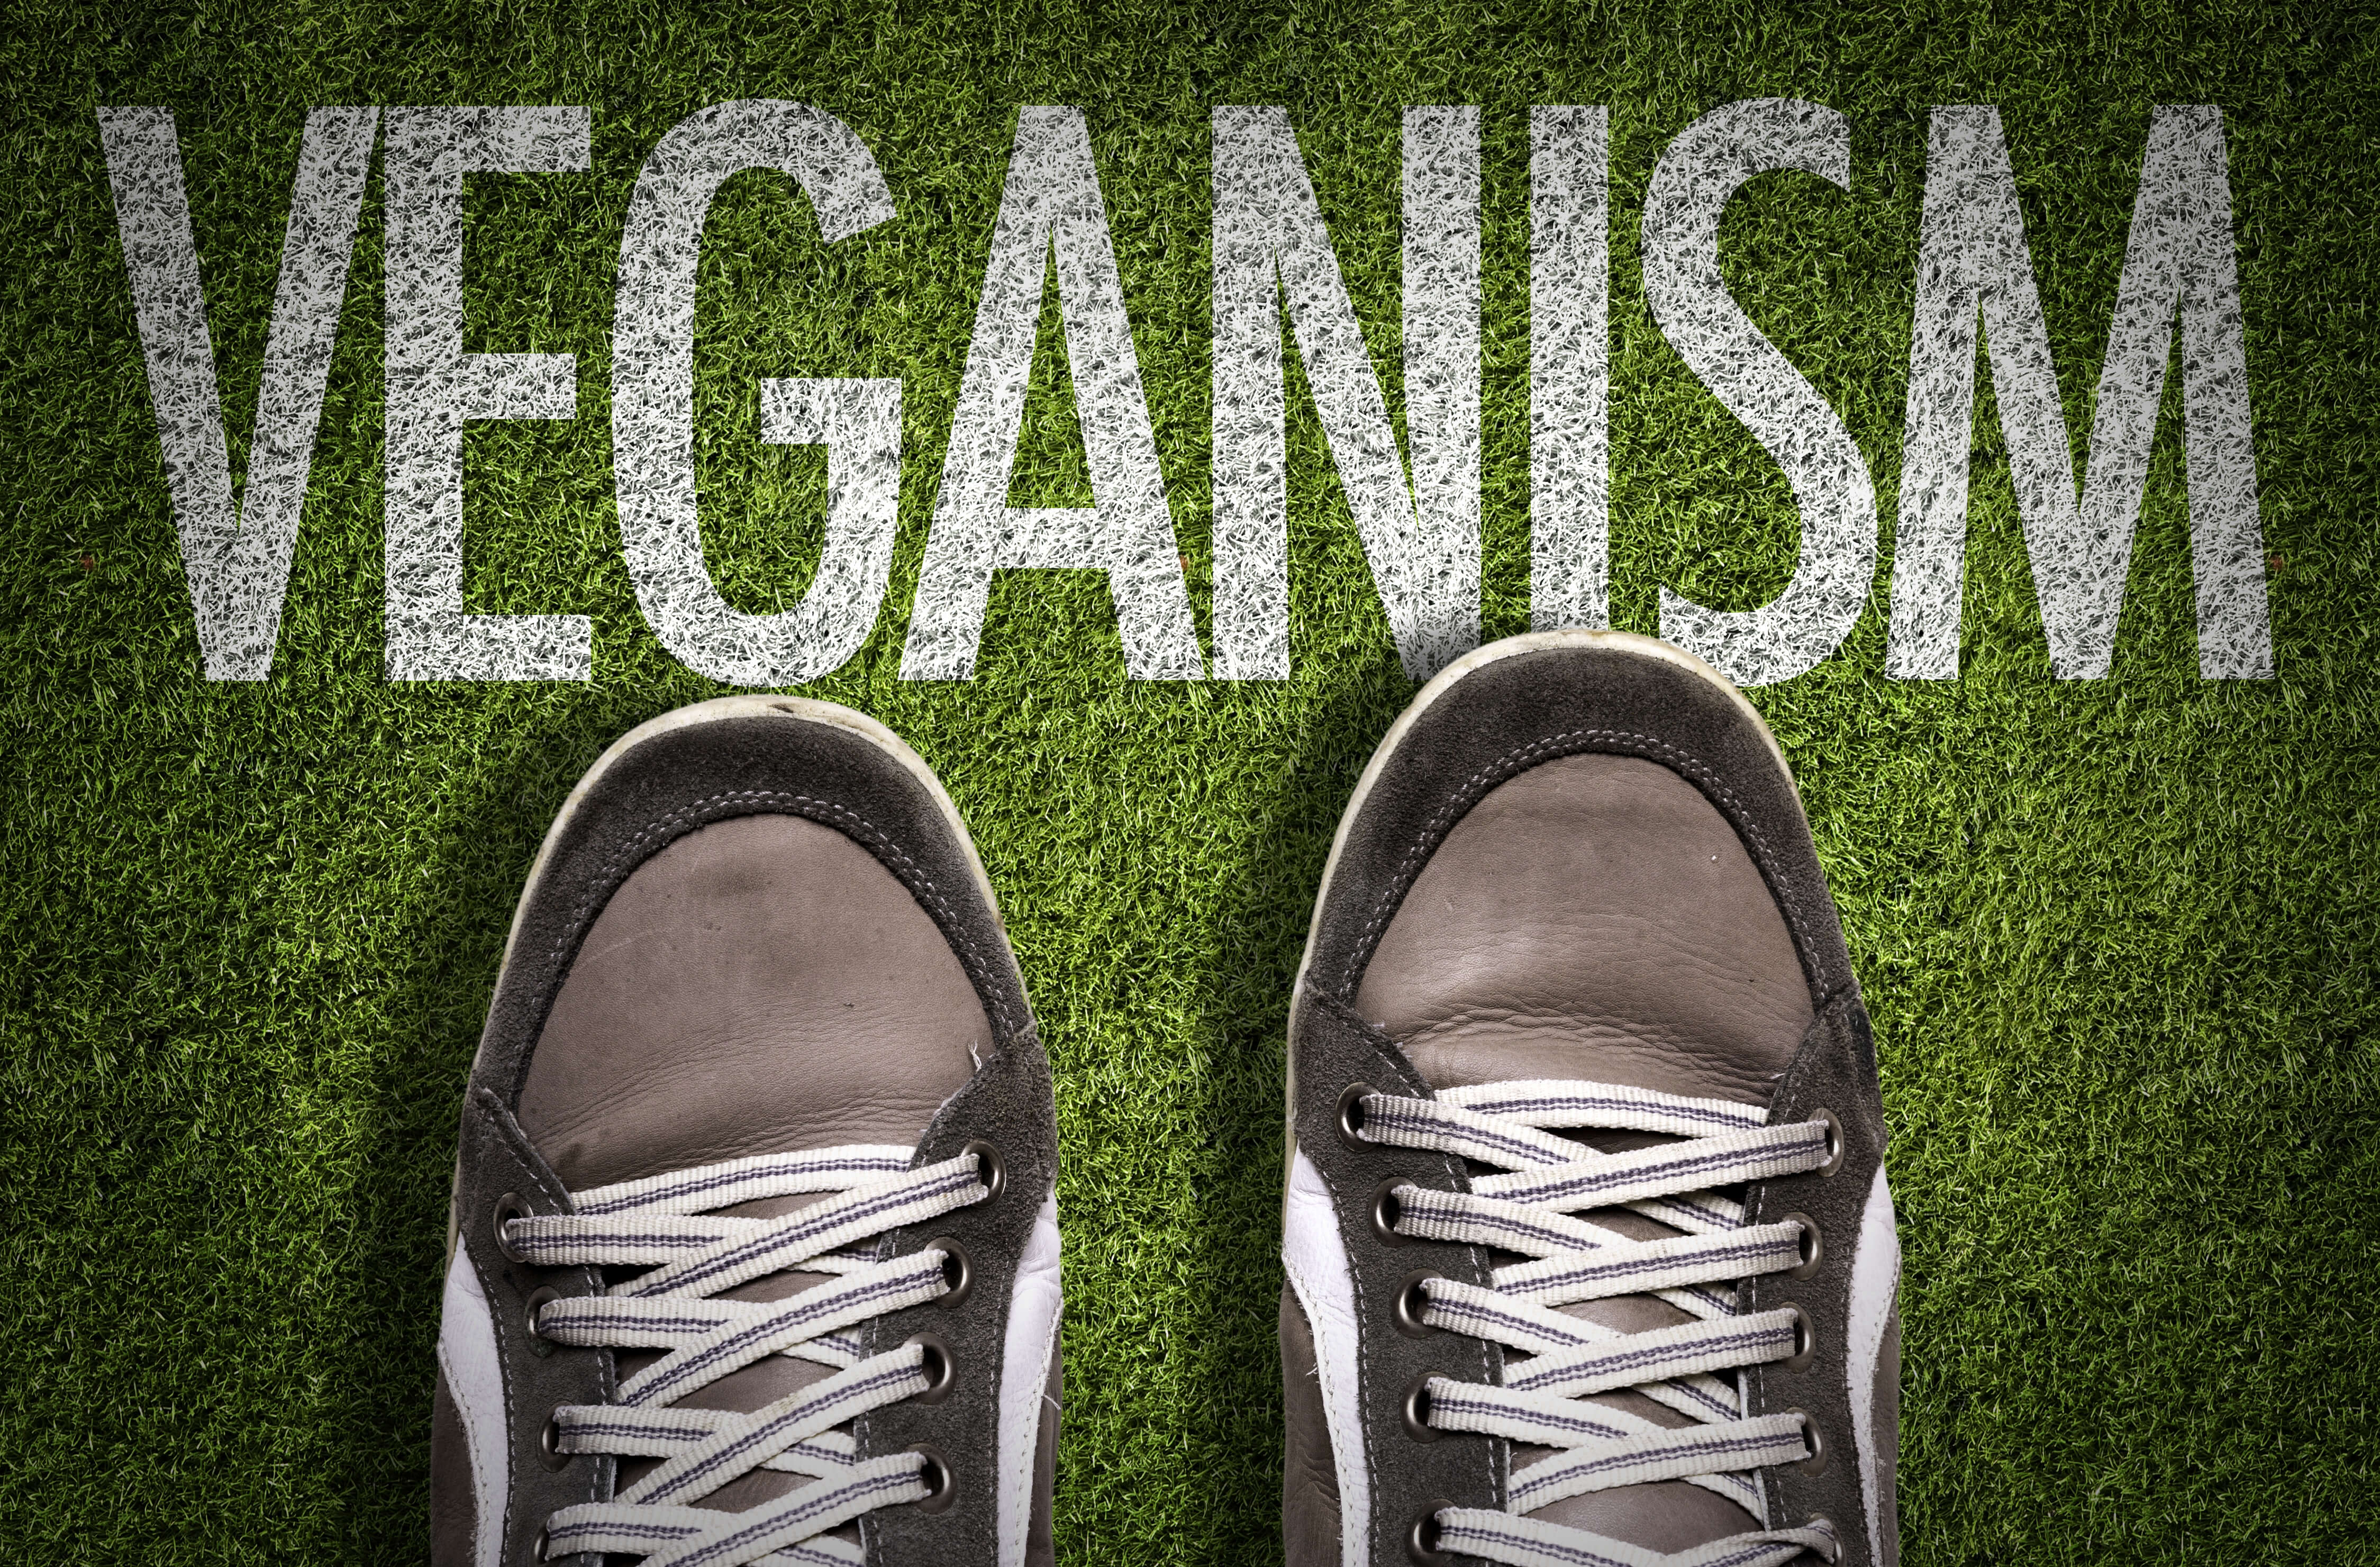 Vegan shoes? But what does it actually mean?